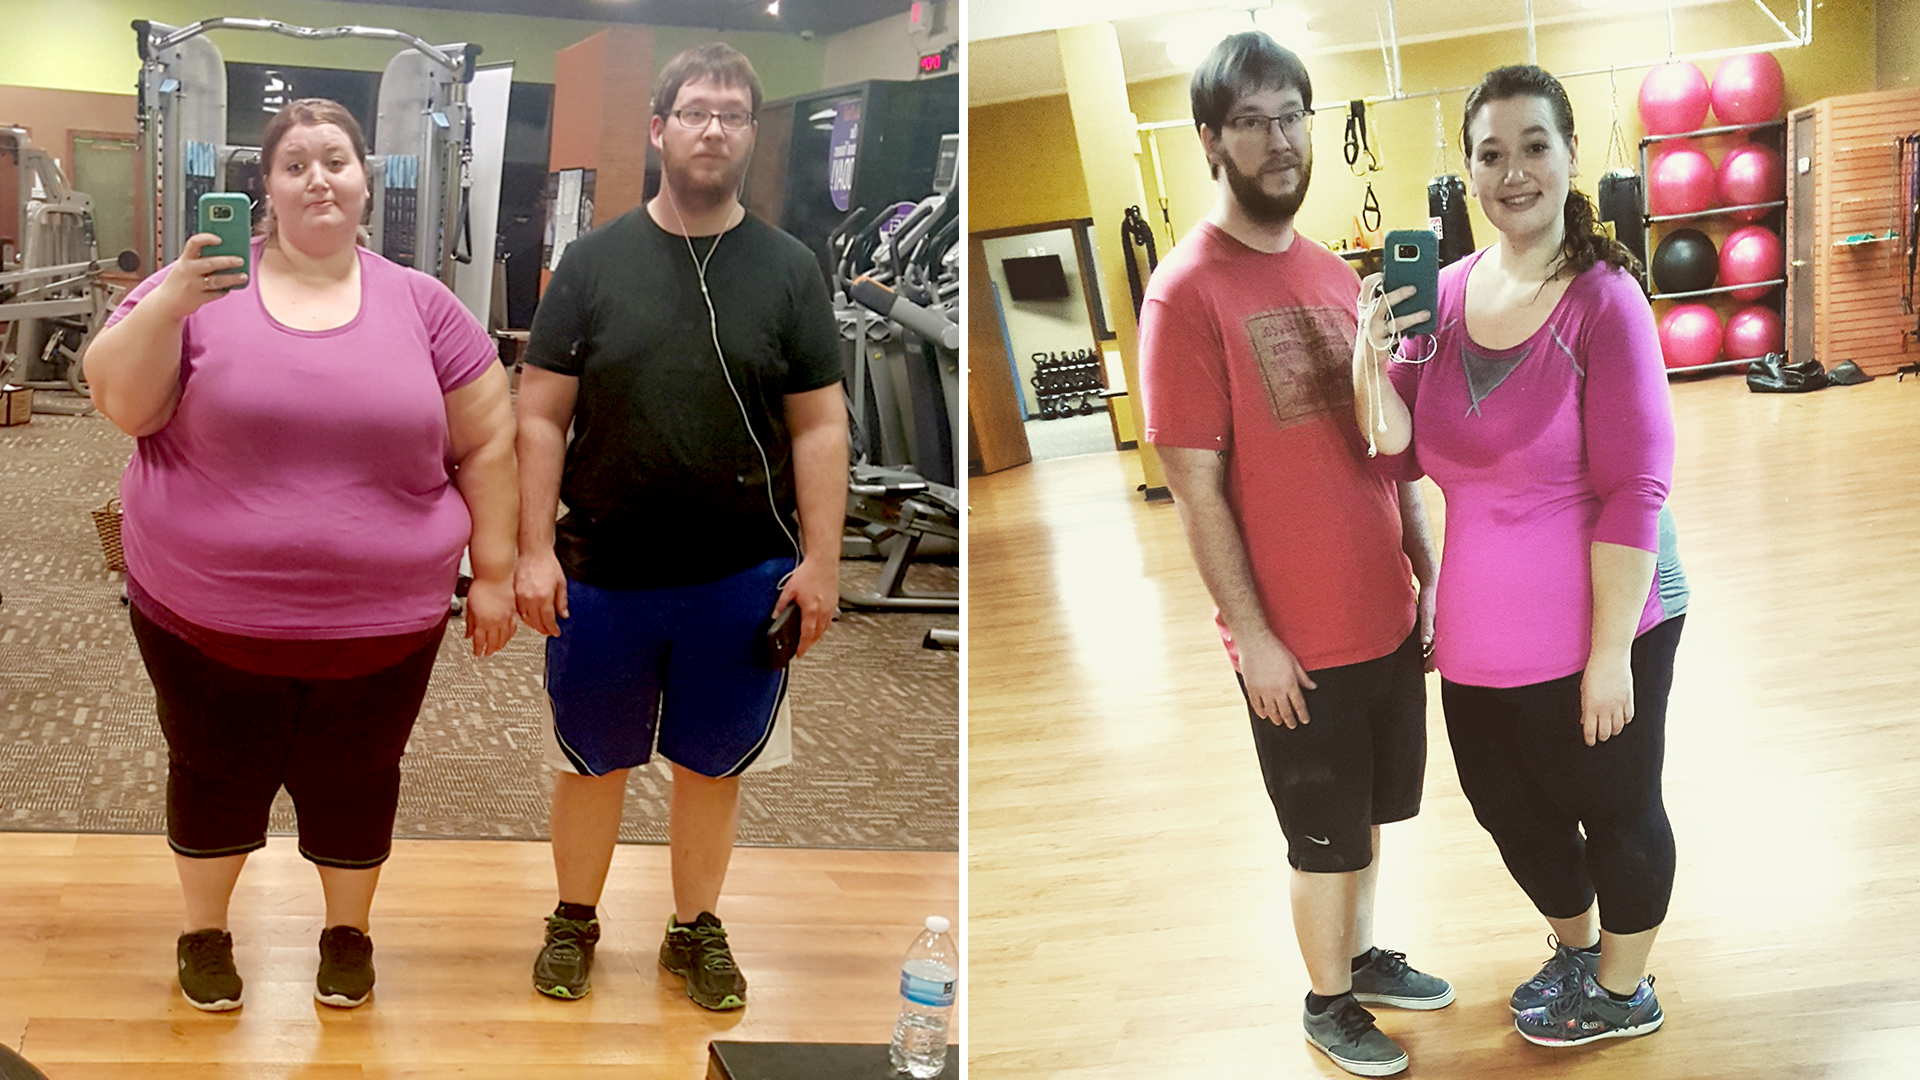 This Couple Lost 315 Lbs Together. Then They Got Real About Sex Before And After